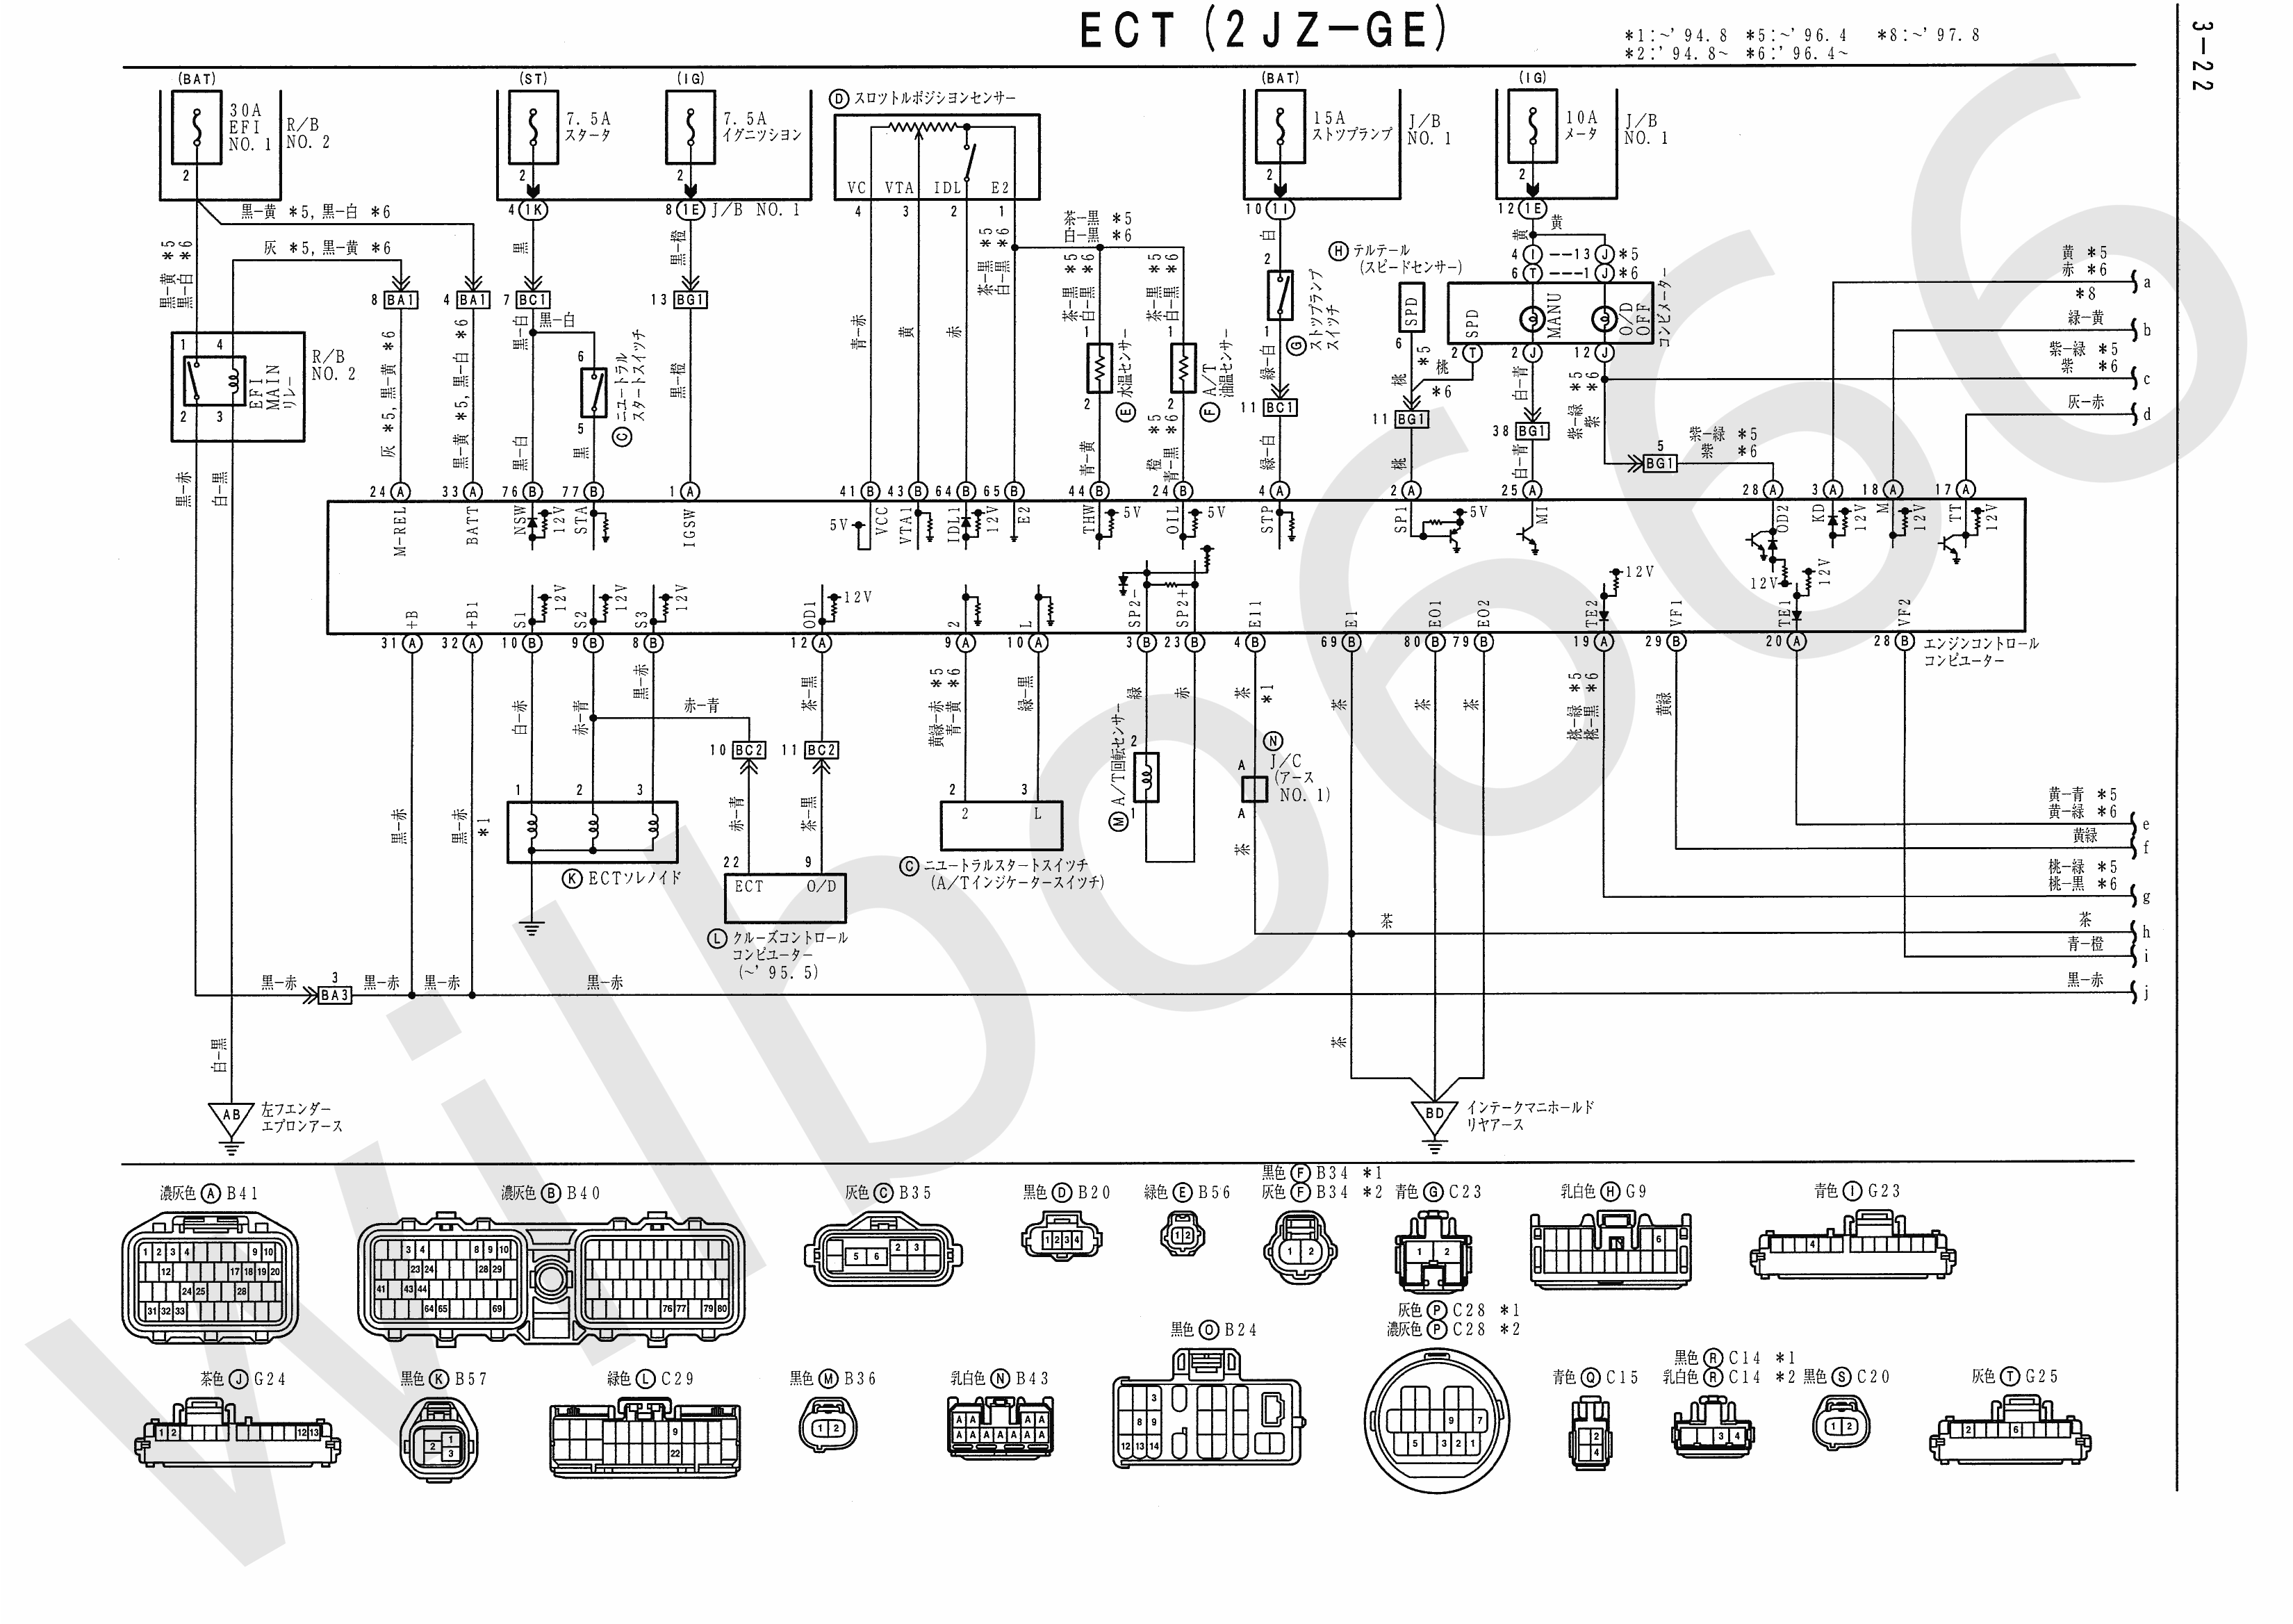 JZA80 Electrical Wiring Diagram 6742505 3 22 wilbo666 2jz ge jza80 supra engine wiring ct shorting block wiring diagram at readyjetset.co